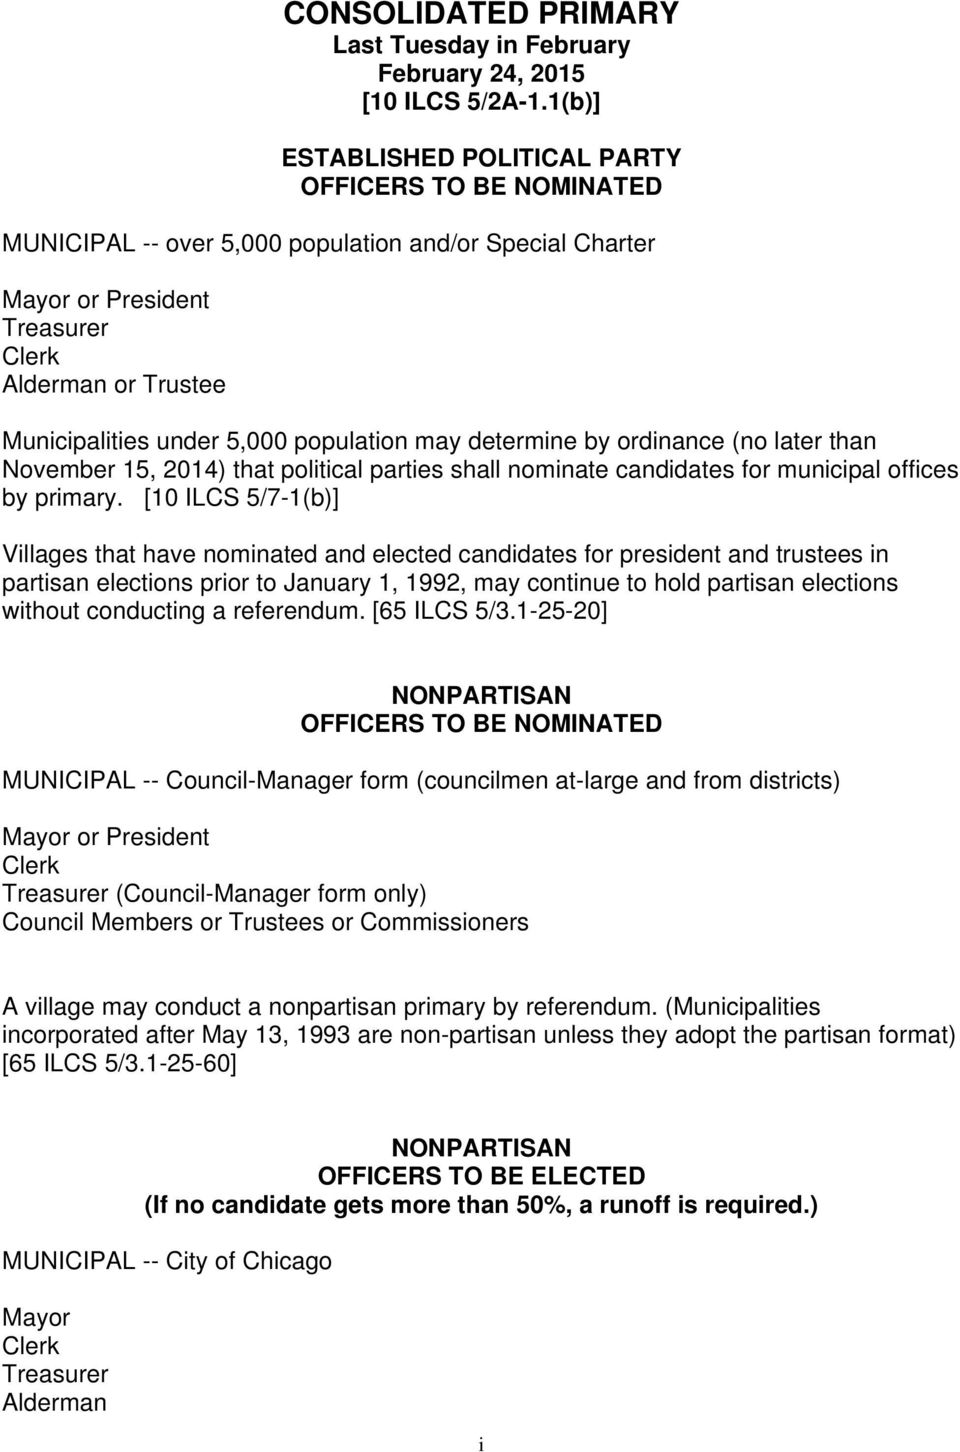 population may determine by ordinance (no later than November 15, 2014) that political parties shall nominate candidates for municipal offices by primary.